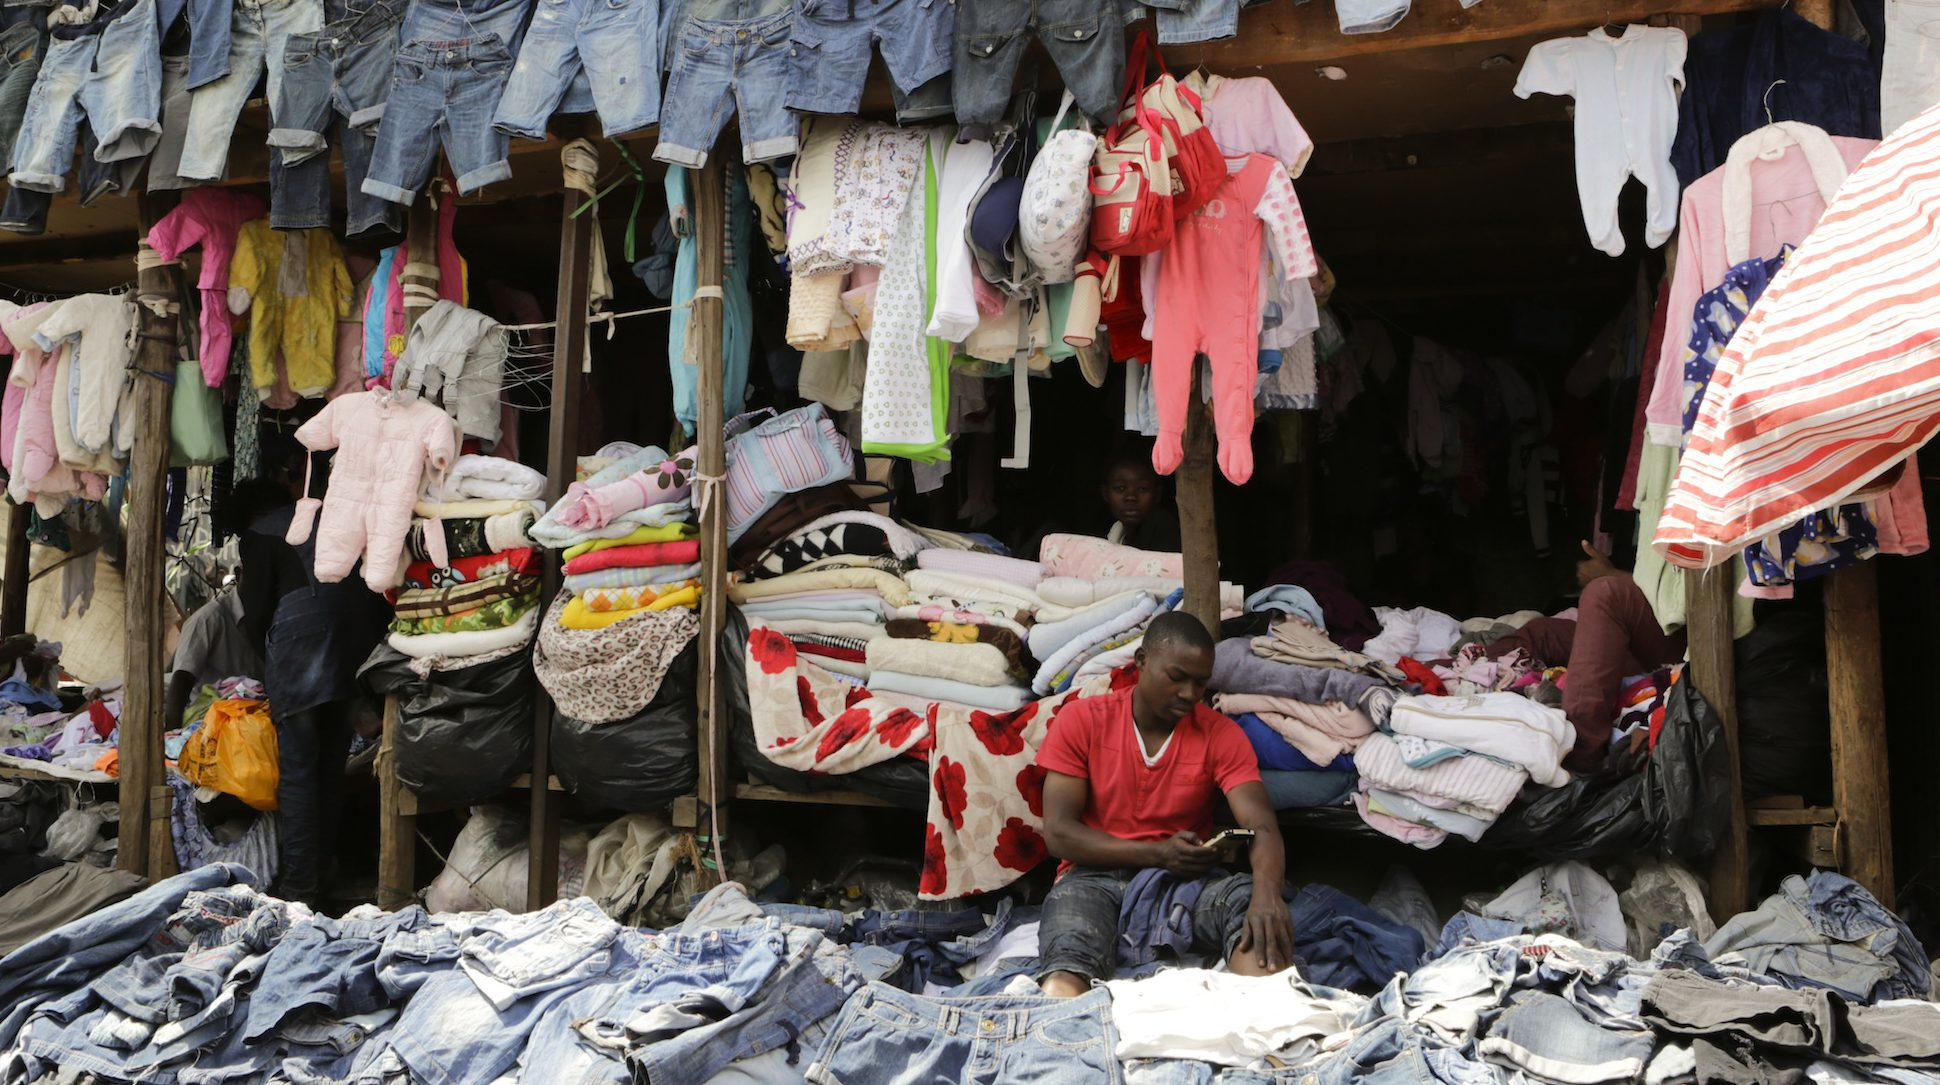 A trader (R) waits for customers at his stall selling secondhand clothes locally known as 'mitumba' at the Gikomba open-air market in Nairobi, Kenya, 27 July 2016. The Gikomba market in Nairobi is said to be the biggest second-hand clothes market in East Africa with close to 65,000 traders. The second-hand clothes sold in Gikomba are mostly imported from North America and Europe, according to a trader at the market. While 'mitumba' is considered to have brought down the market for locally made clothes and fabrics, it has also opened new opportunities for business people and new upcoming designers and stylists who rely on the second-hand clothes in their daily work as the second-hand clothes are considered to be easily available, affordable and provide a wide range of fashion styles, colors and fabrics compared to locally manufactured fashion apparels. Therefore they sell faster and in large quantities